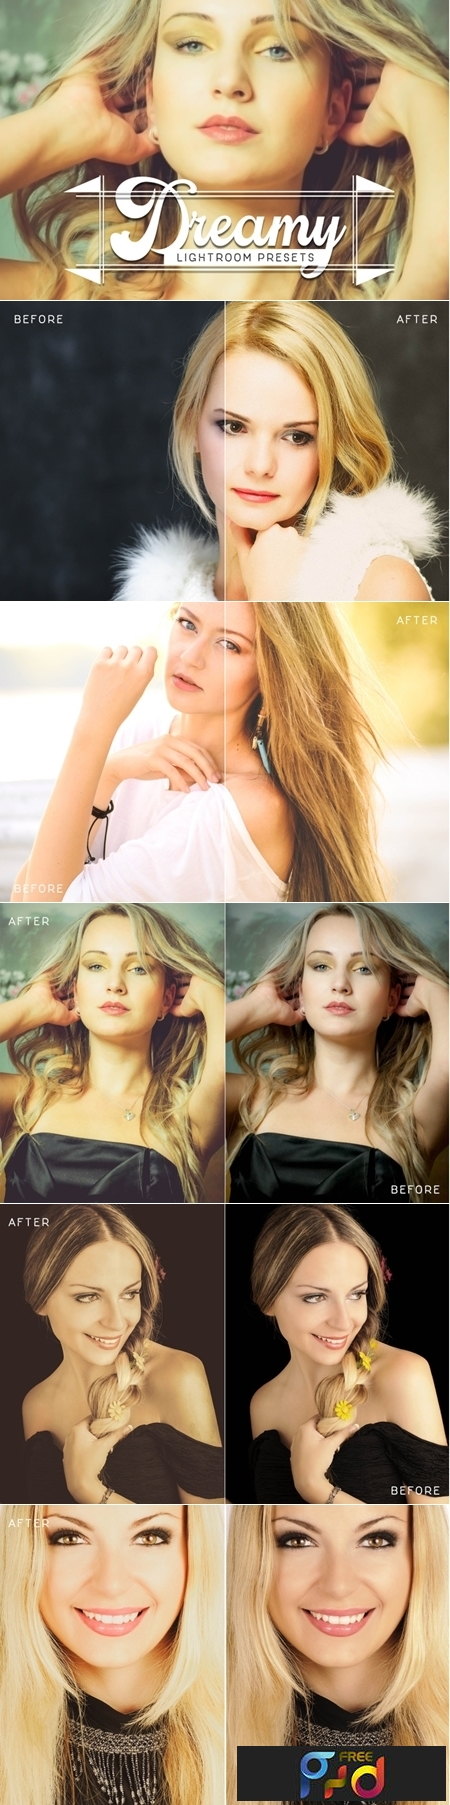 Dreamy Lightroom Presets 3553645 1